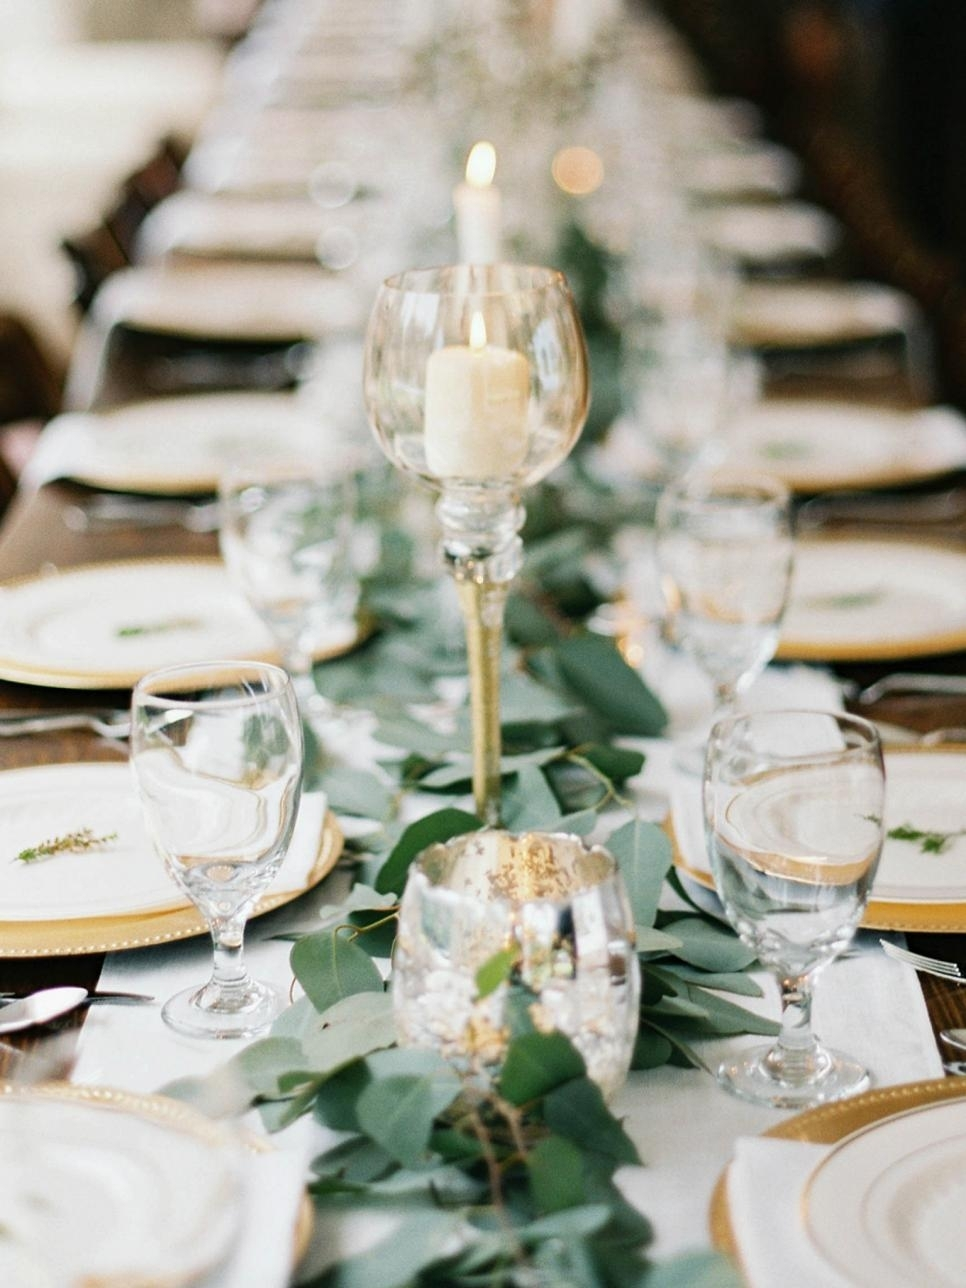 10 Cute Table Setting Ideas For Wedding %name 2021